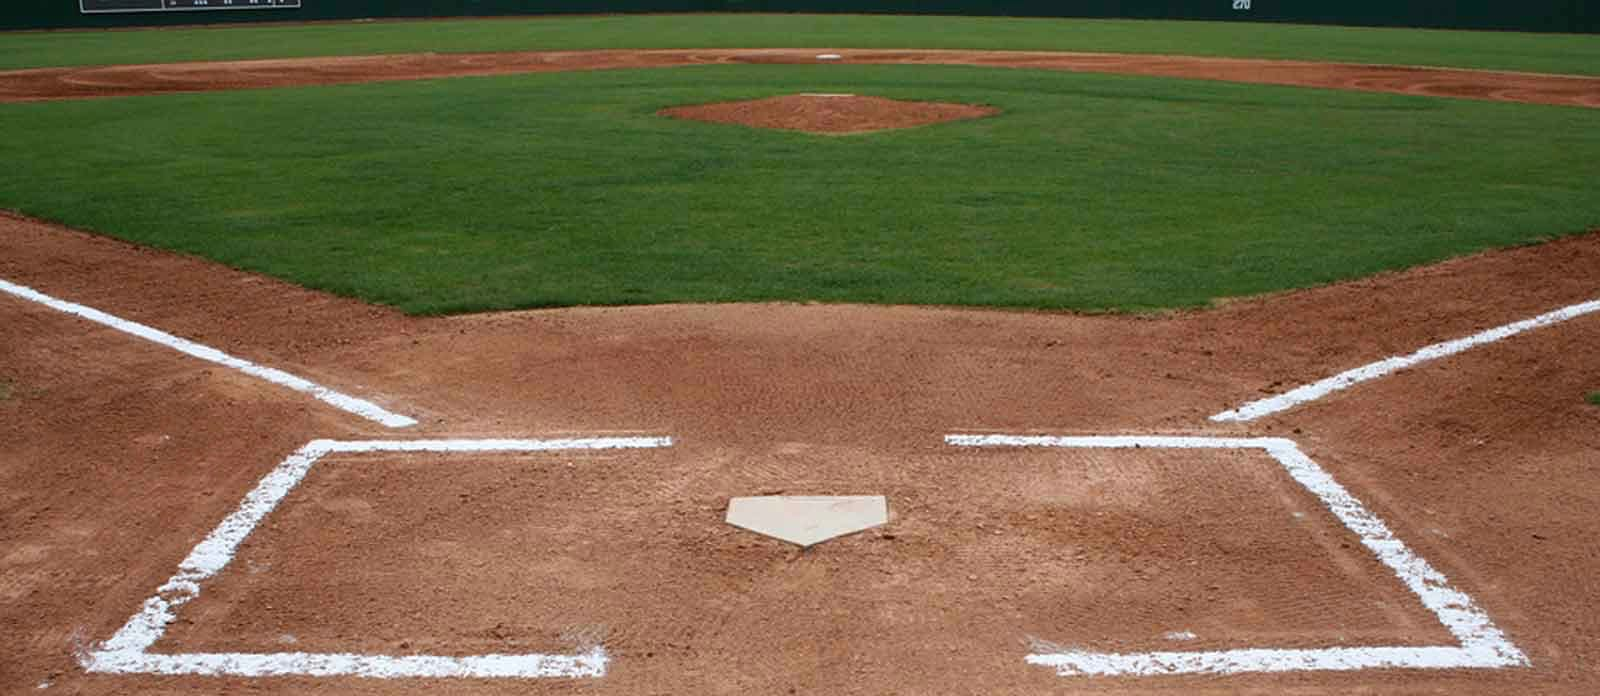 Baseball-Field-at-Home1 (1)